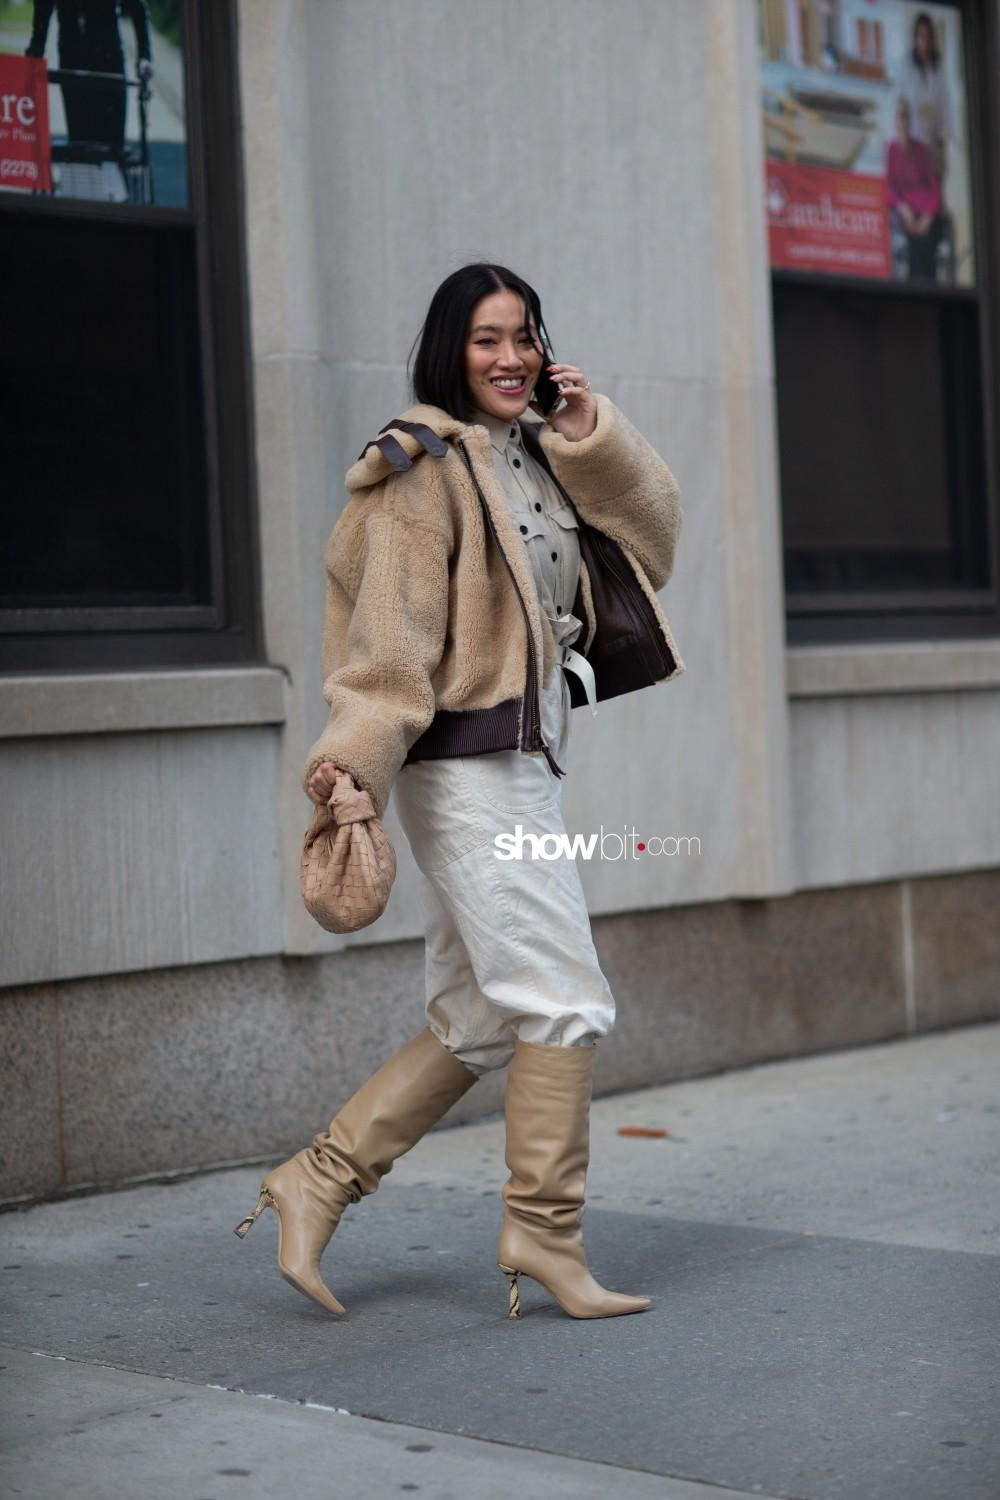 Tory Burch people street style Women Fall Winter 2020 New York